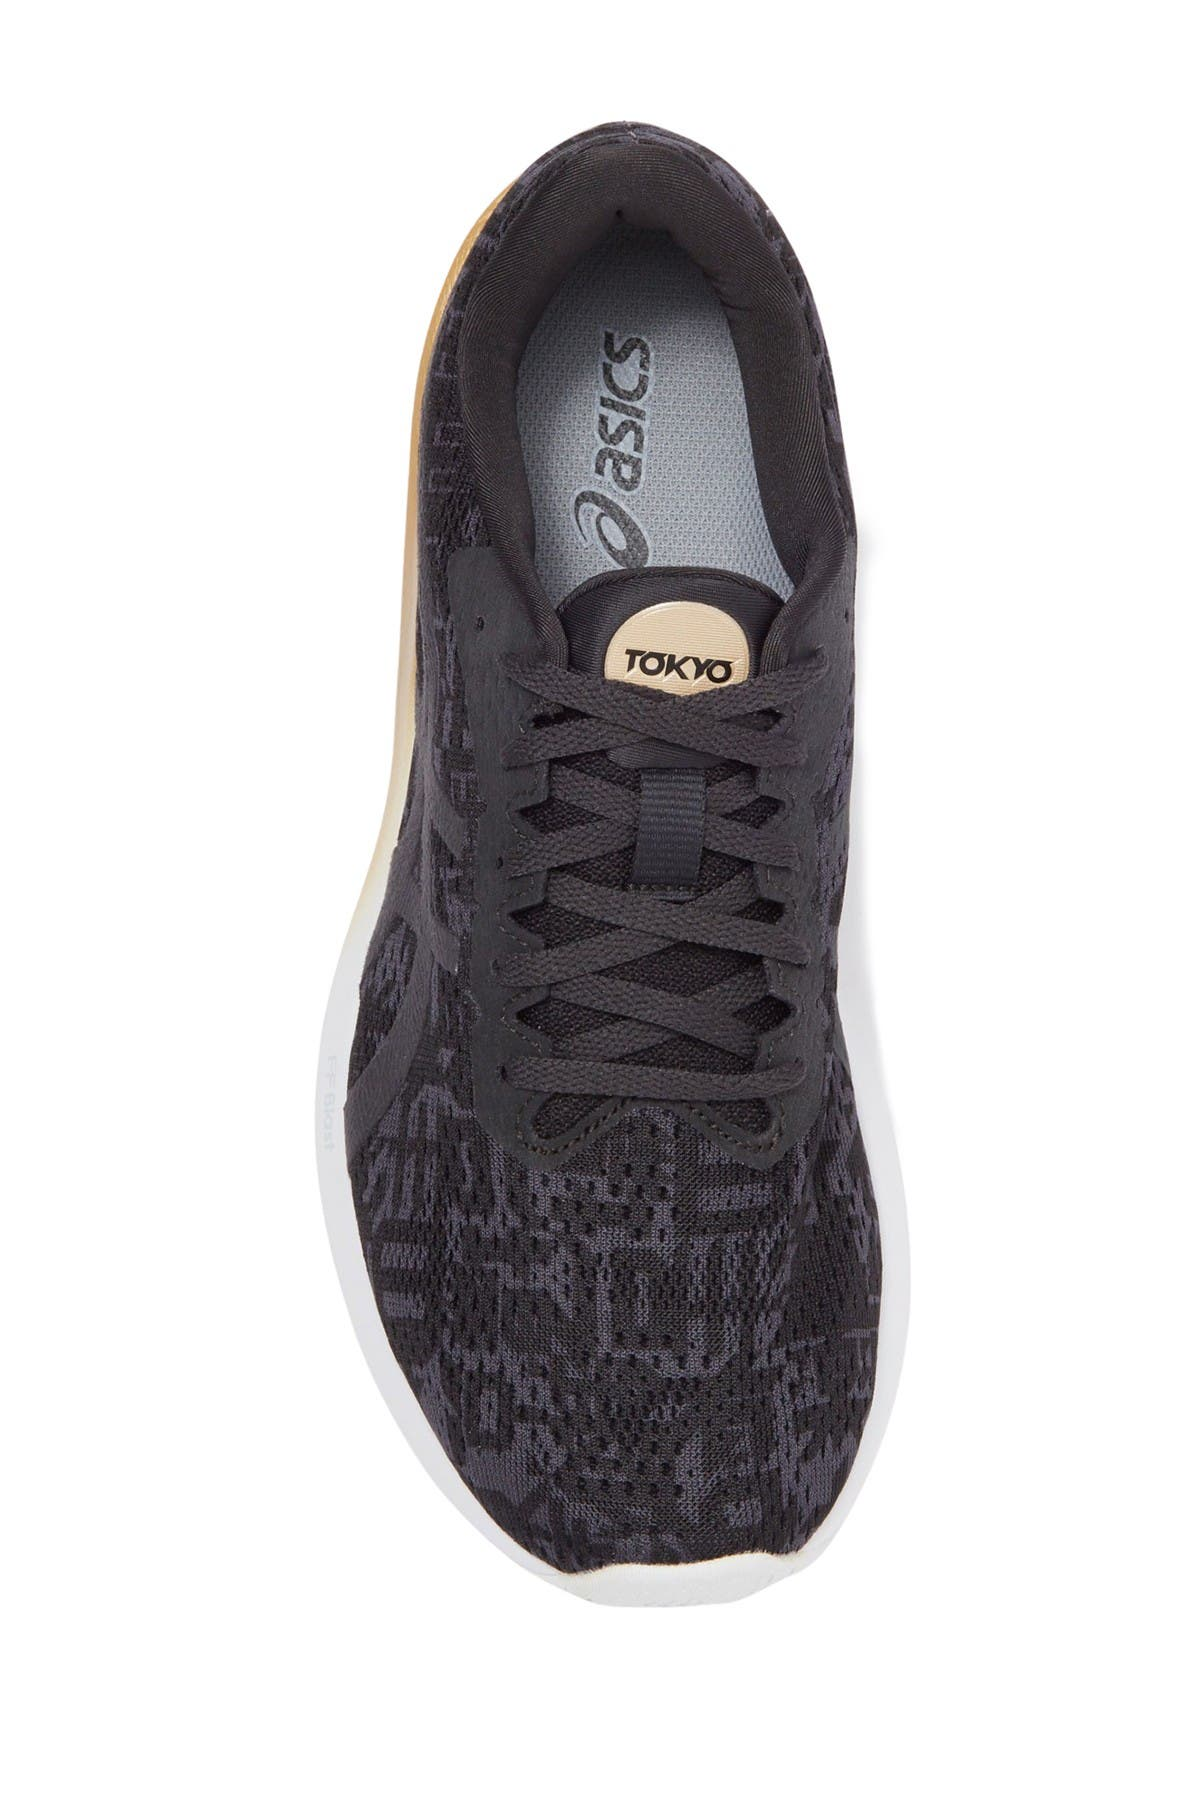 Image of ASICS Roadblast Patterned Sneaker